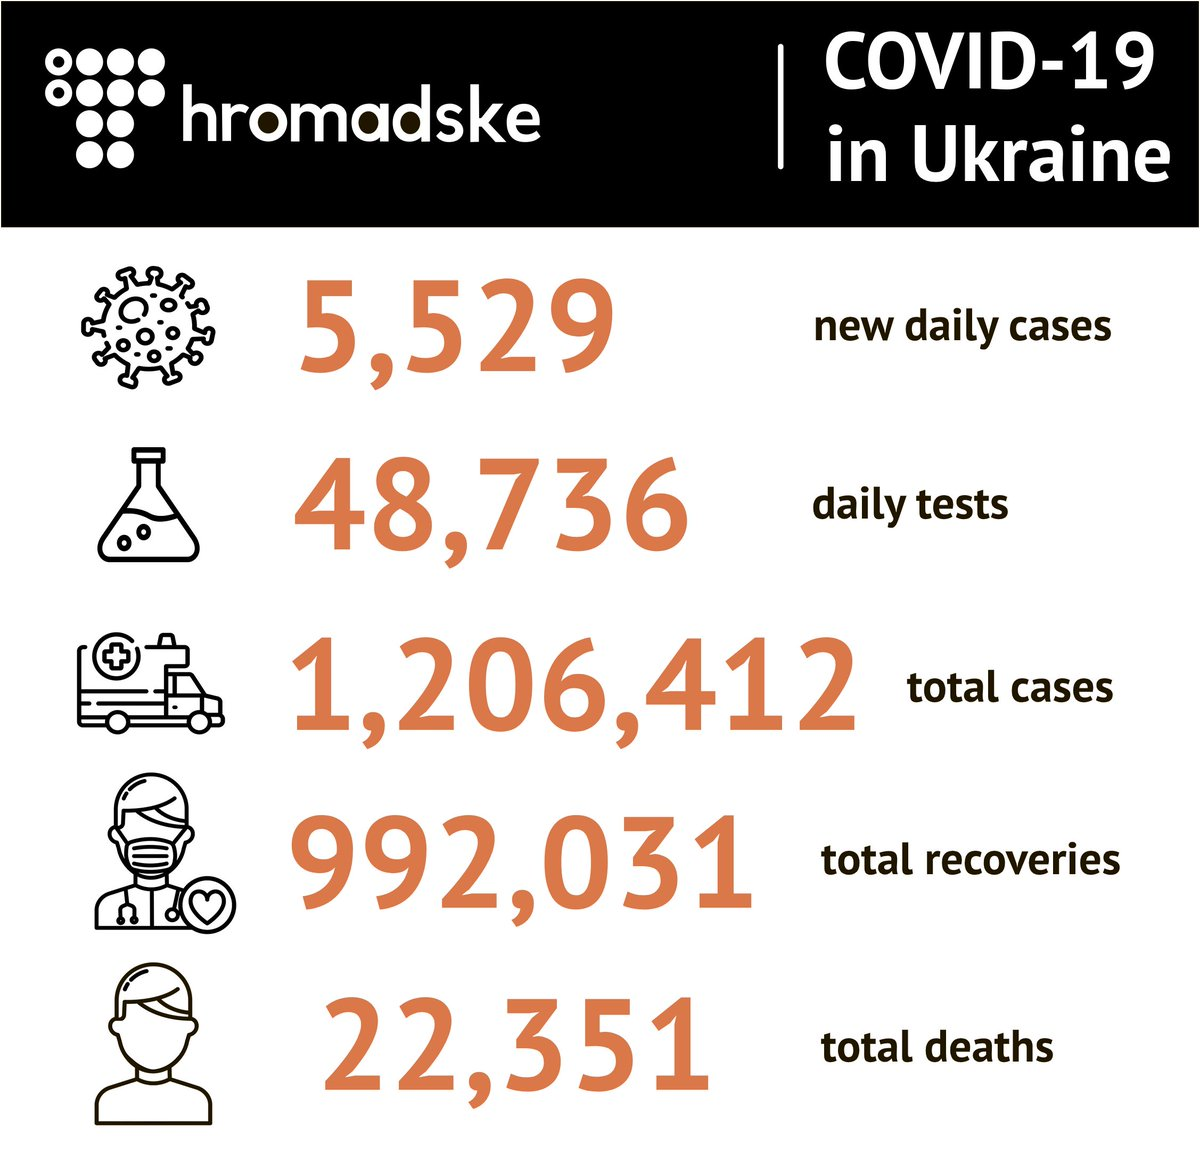 5,529 new #coronavirus cases were detected in #Ukraine yesterday. 11,946 patients recovered, 149 died of complications & 1,941 were hospitalized acc. to Health Minister Maksym Stepanov.  A total of 1,206,412 COVID cases have been confirmed, w/ 992,031 recoveries & 22,351 deaths.